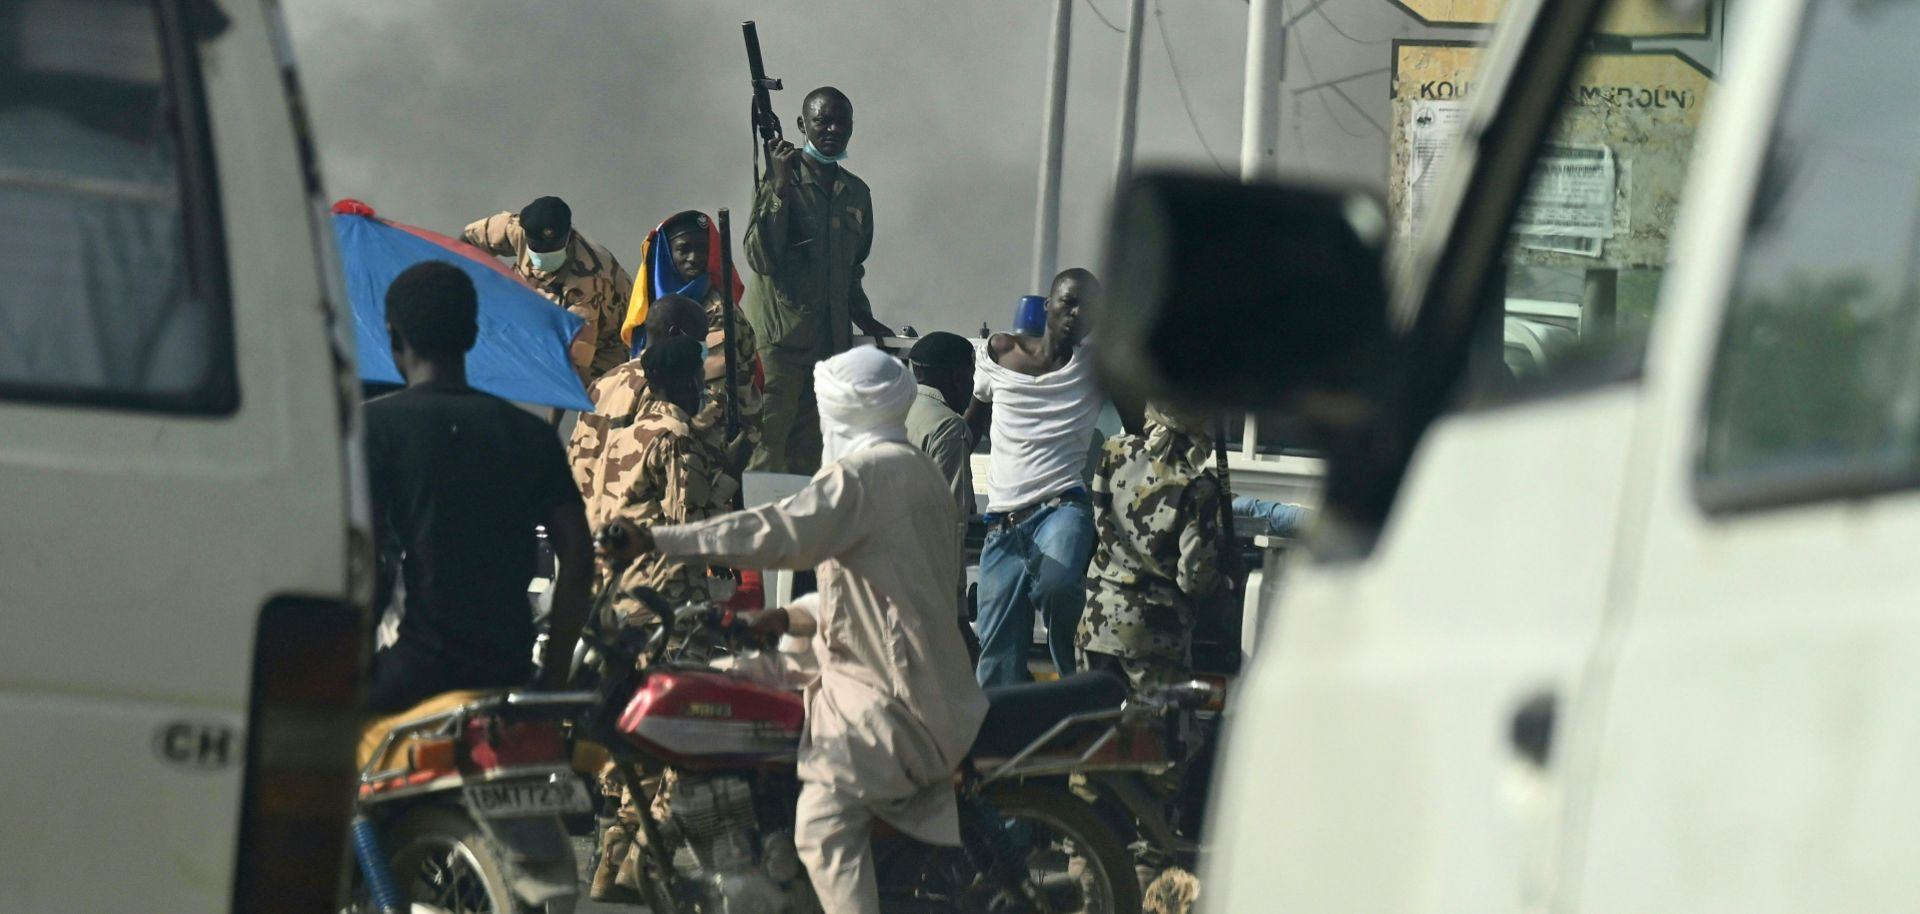 Police clash with opposition demonstrators in N'Djamena, Chad, on April 27, 2021.